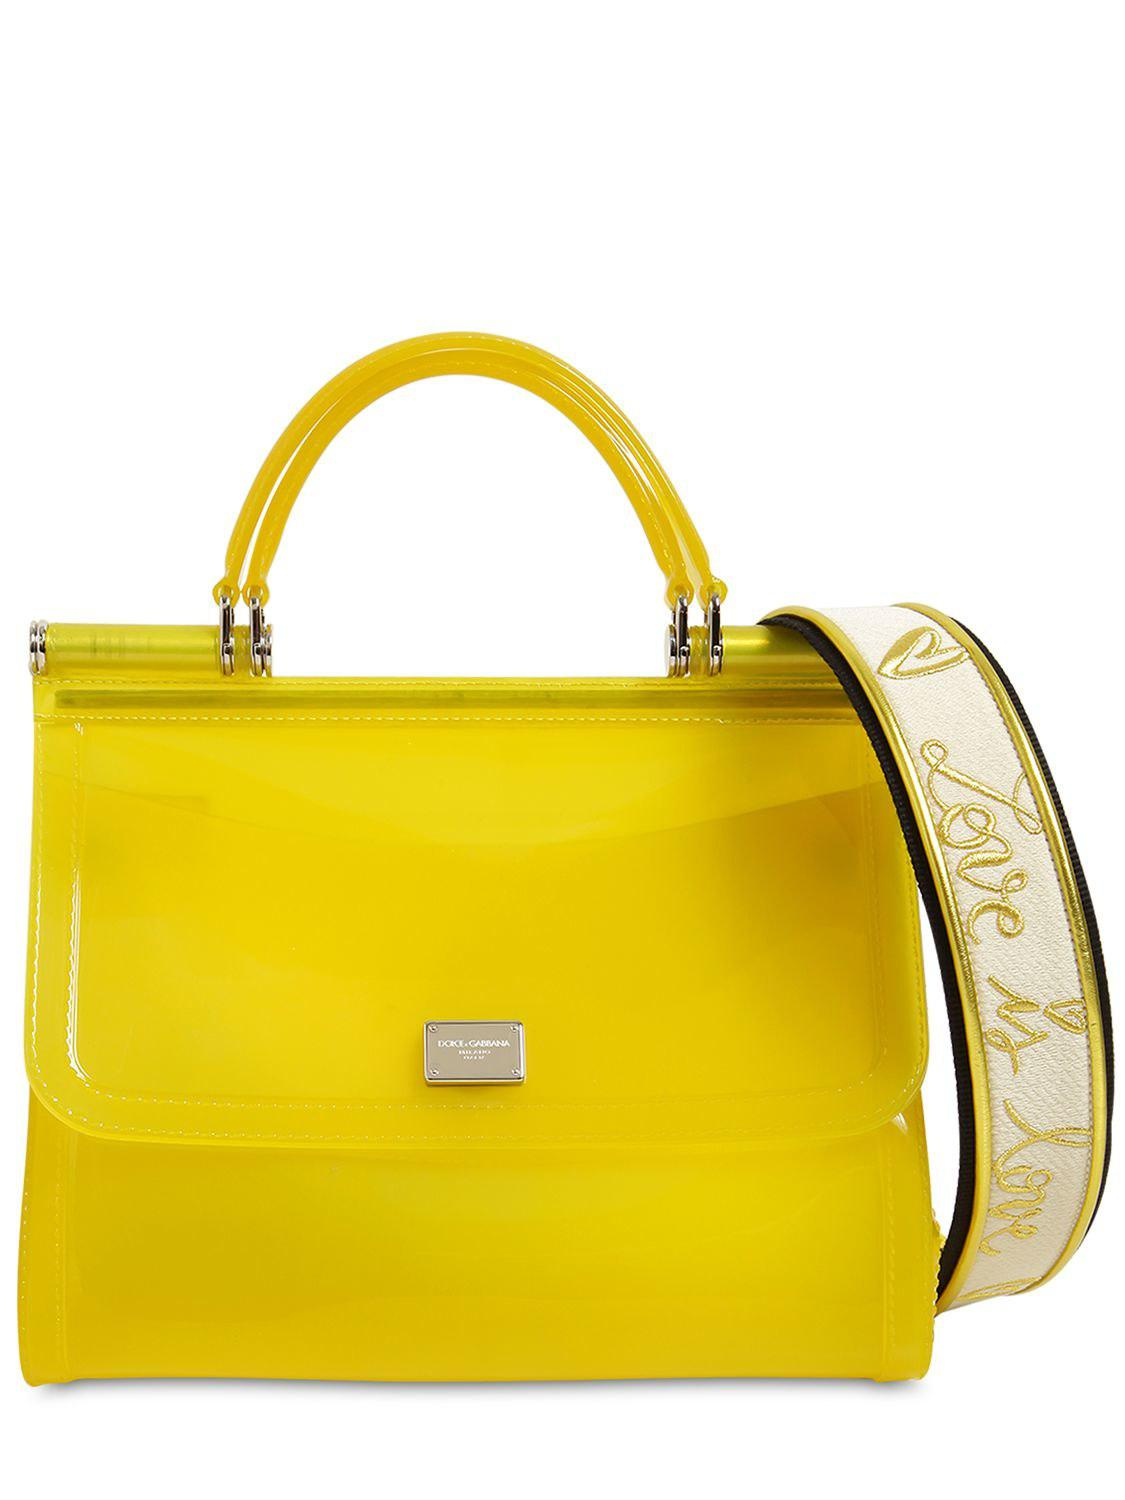 Dolce   Gabbana Sicily Faux Patent Leather Bag in Yellow - Lyst 9693f28913fab